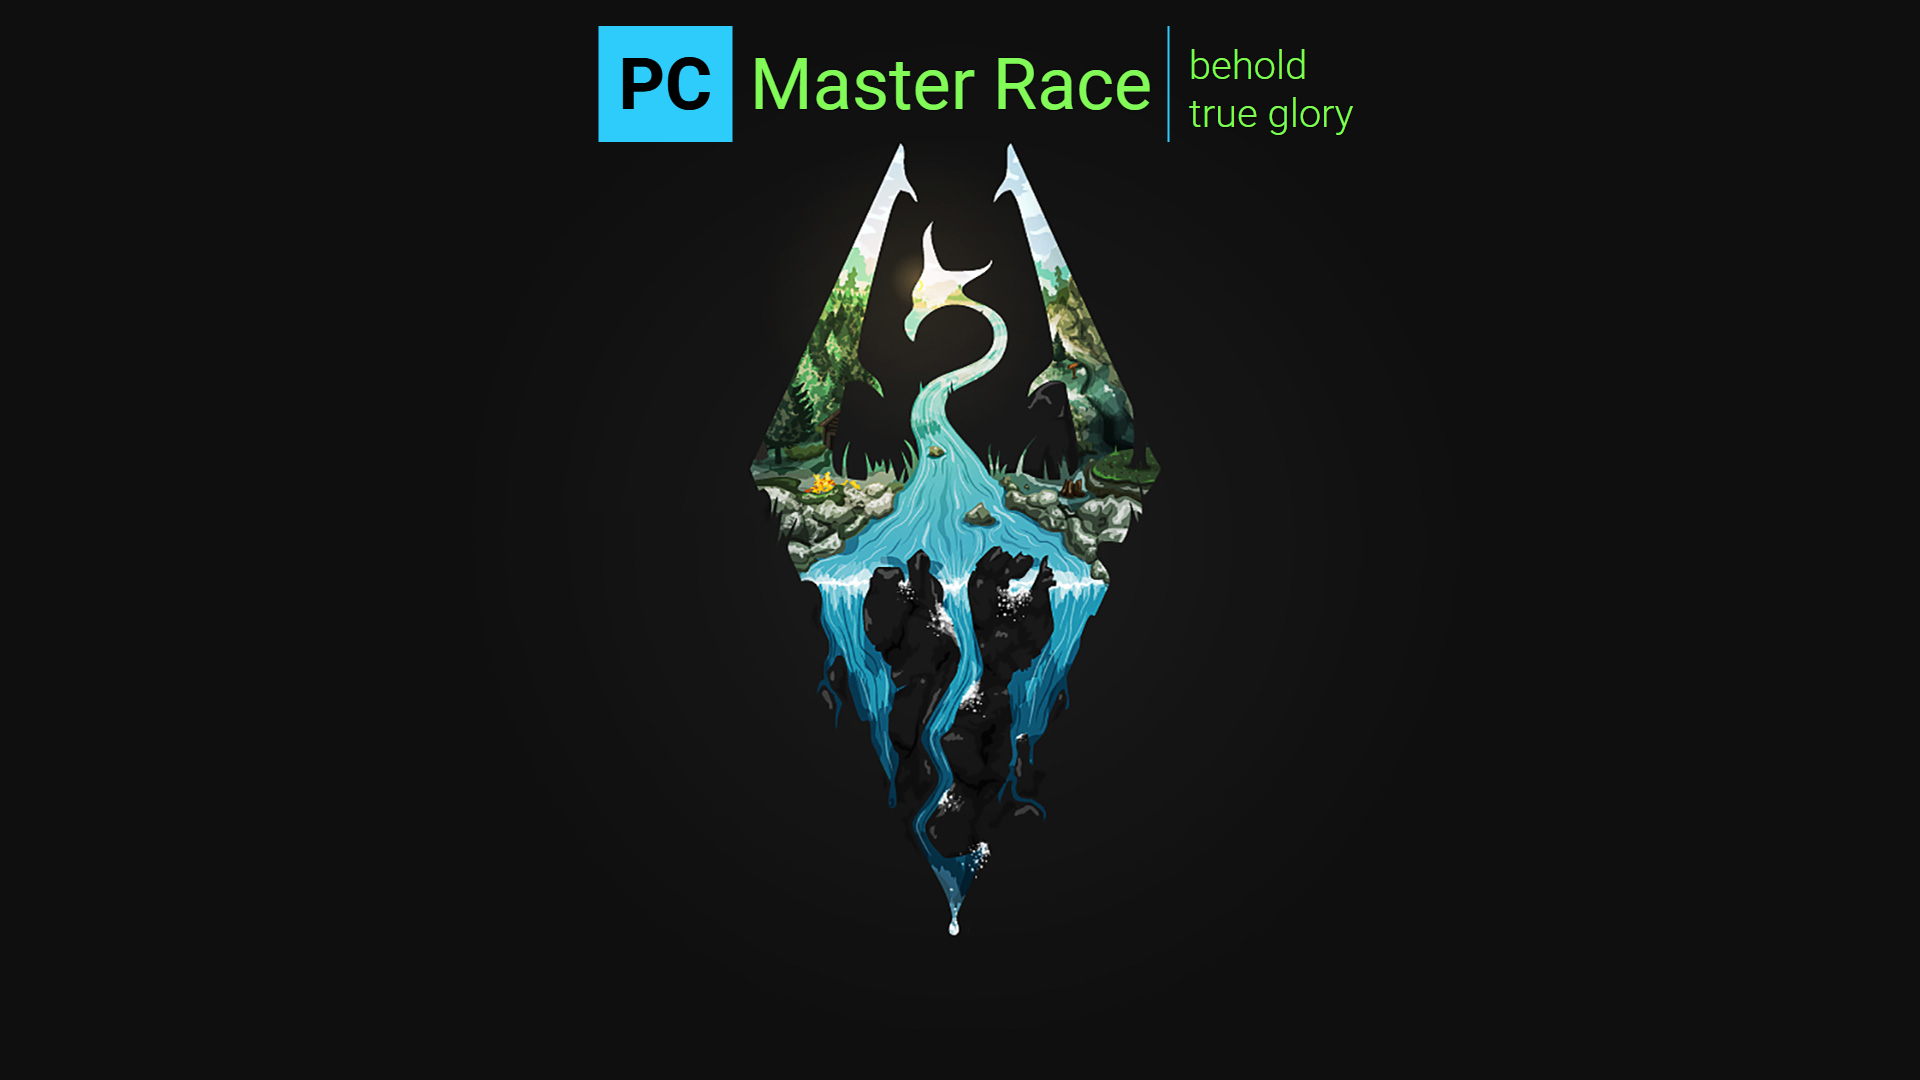 Pc Master Race Wallpaper 3440x1440 Posted By Christopher Cunningham